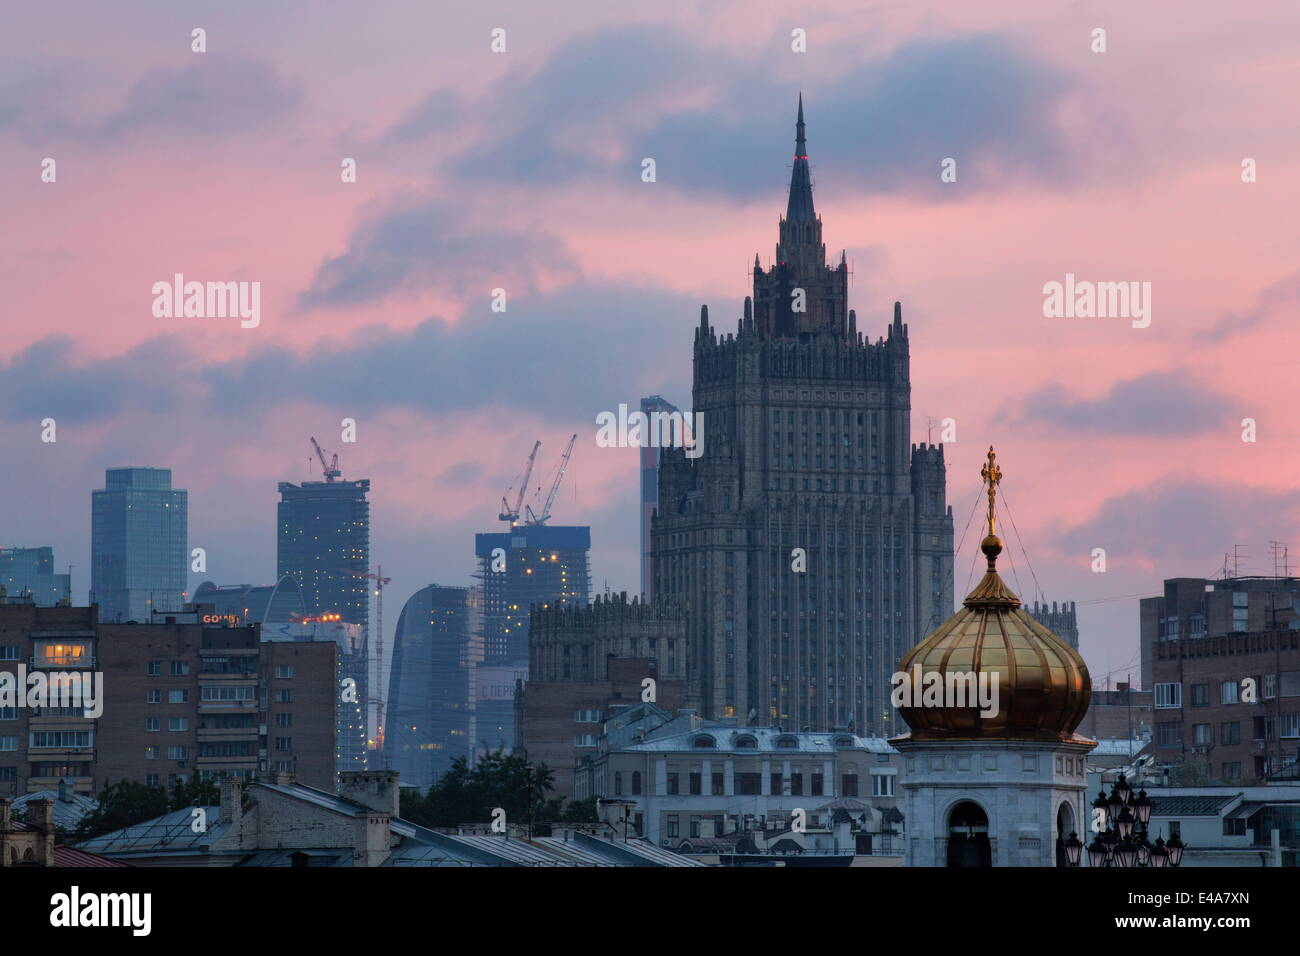 Moscow skyline at dusk with Stalanist-Gothic skyscraper, Moscow, Russia, Europe - Stock Image